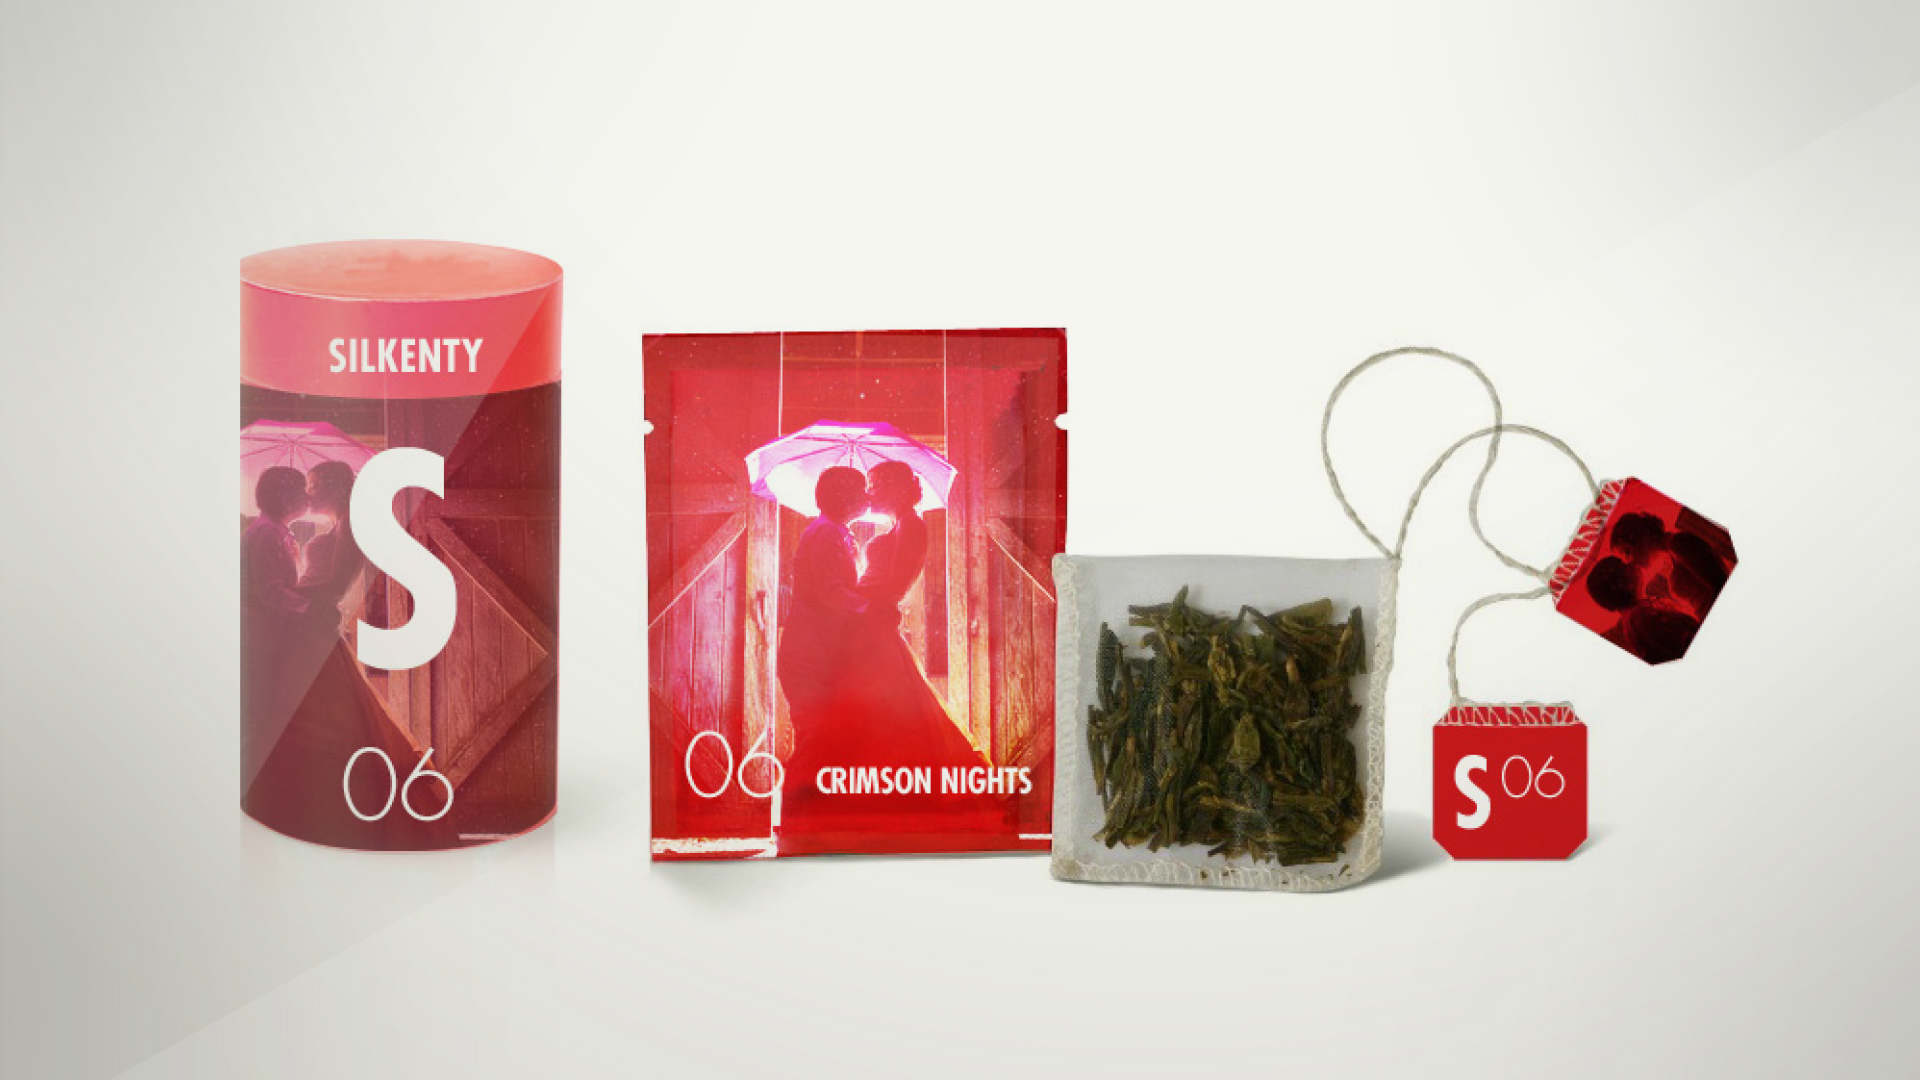 Silkenty. Case. Visuals pitch, creatieve strategie, branding & identity, creative- & art direction, concept, design, packaging. Sham Ramessar